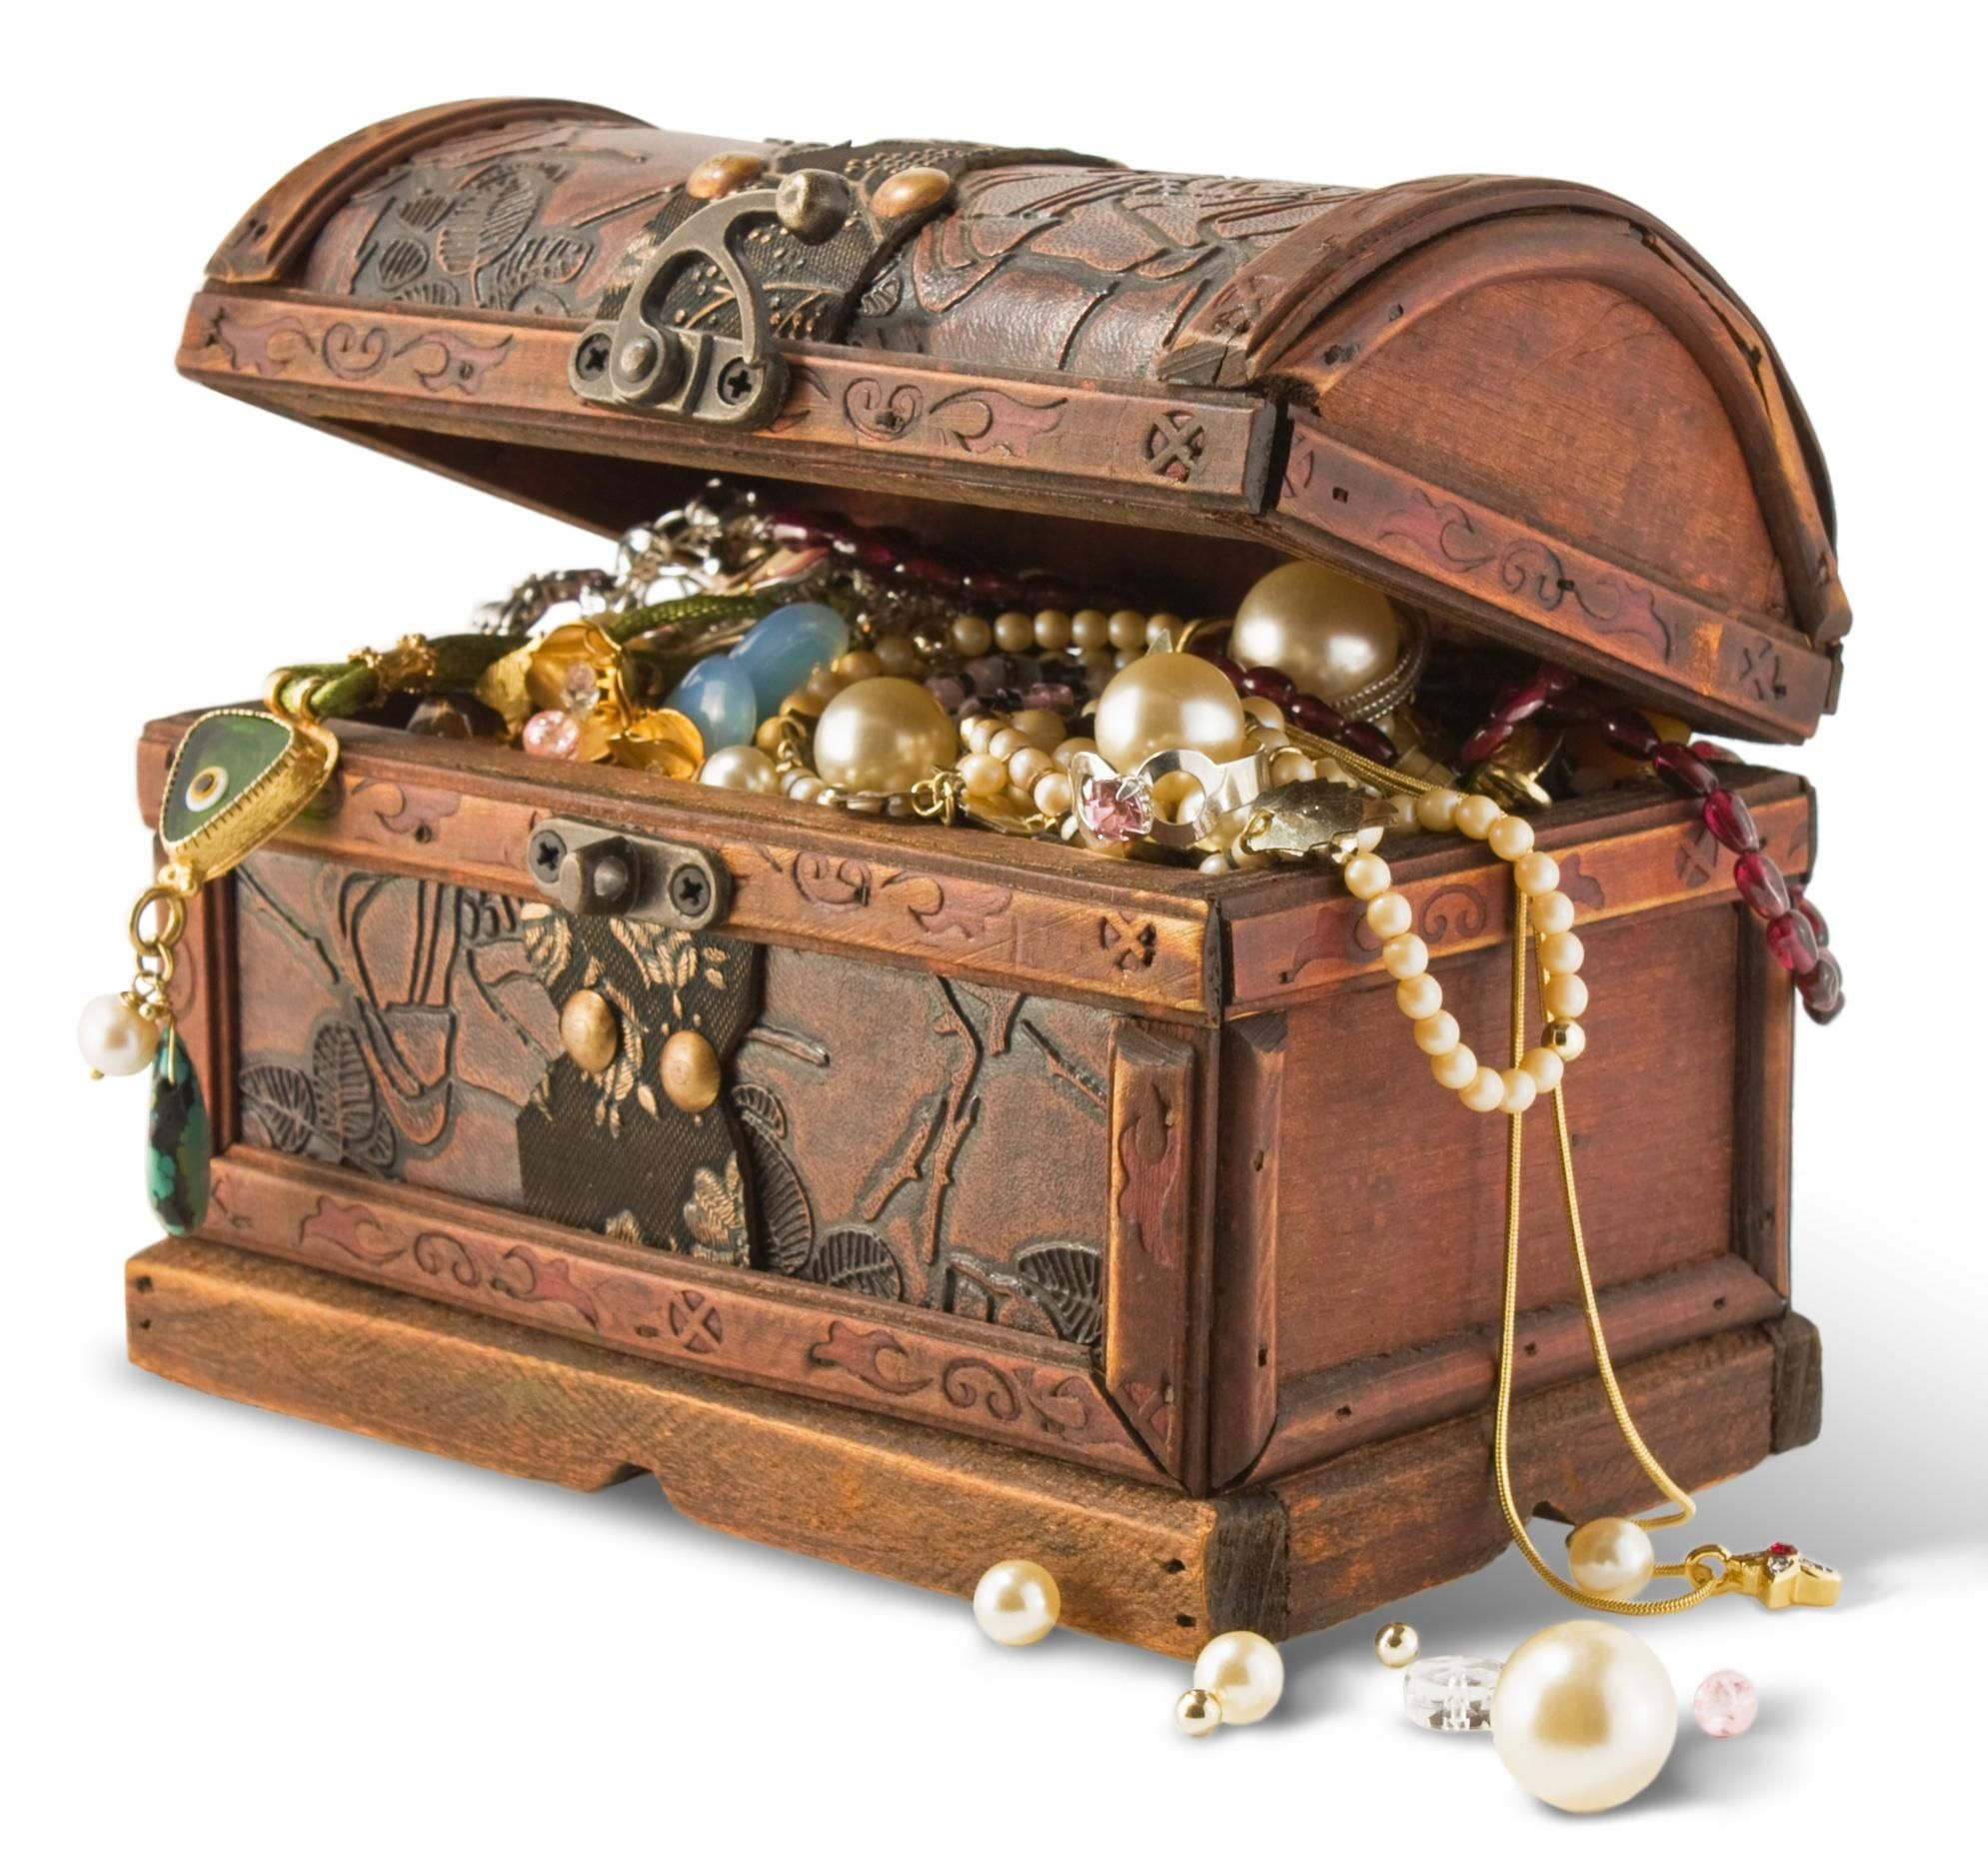 Incredible Treasure Chest Random Things I Love Pirate Treasure Home Interior And Landscaping Ologienasavecom